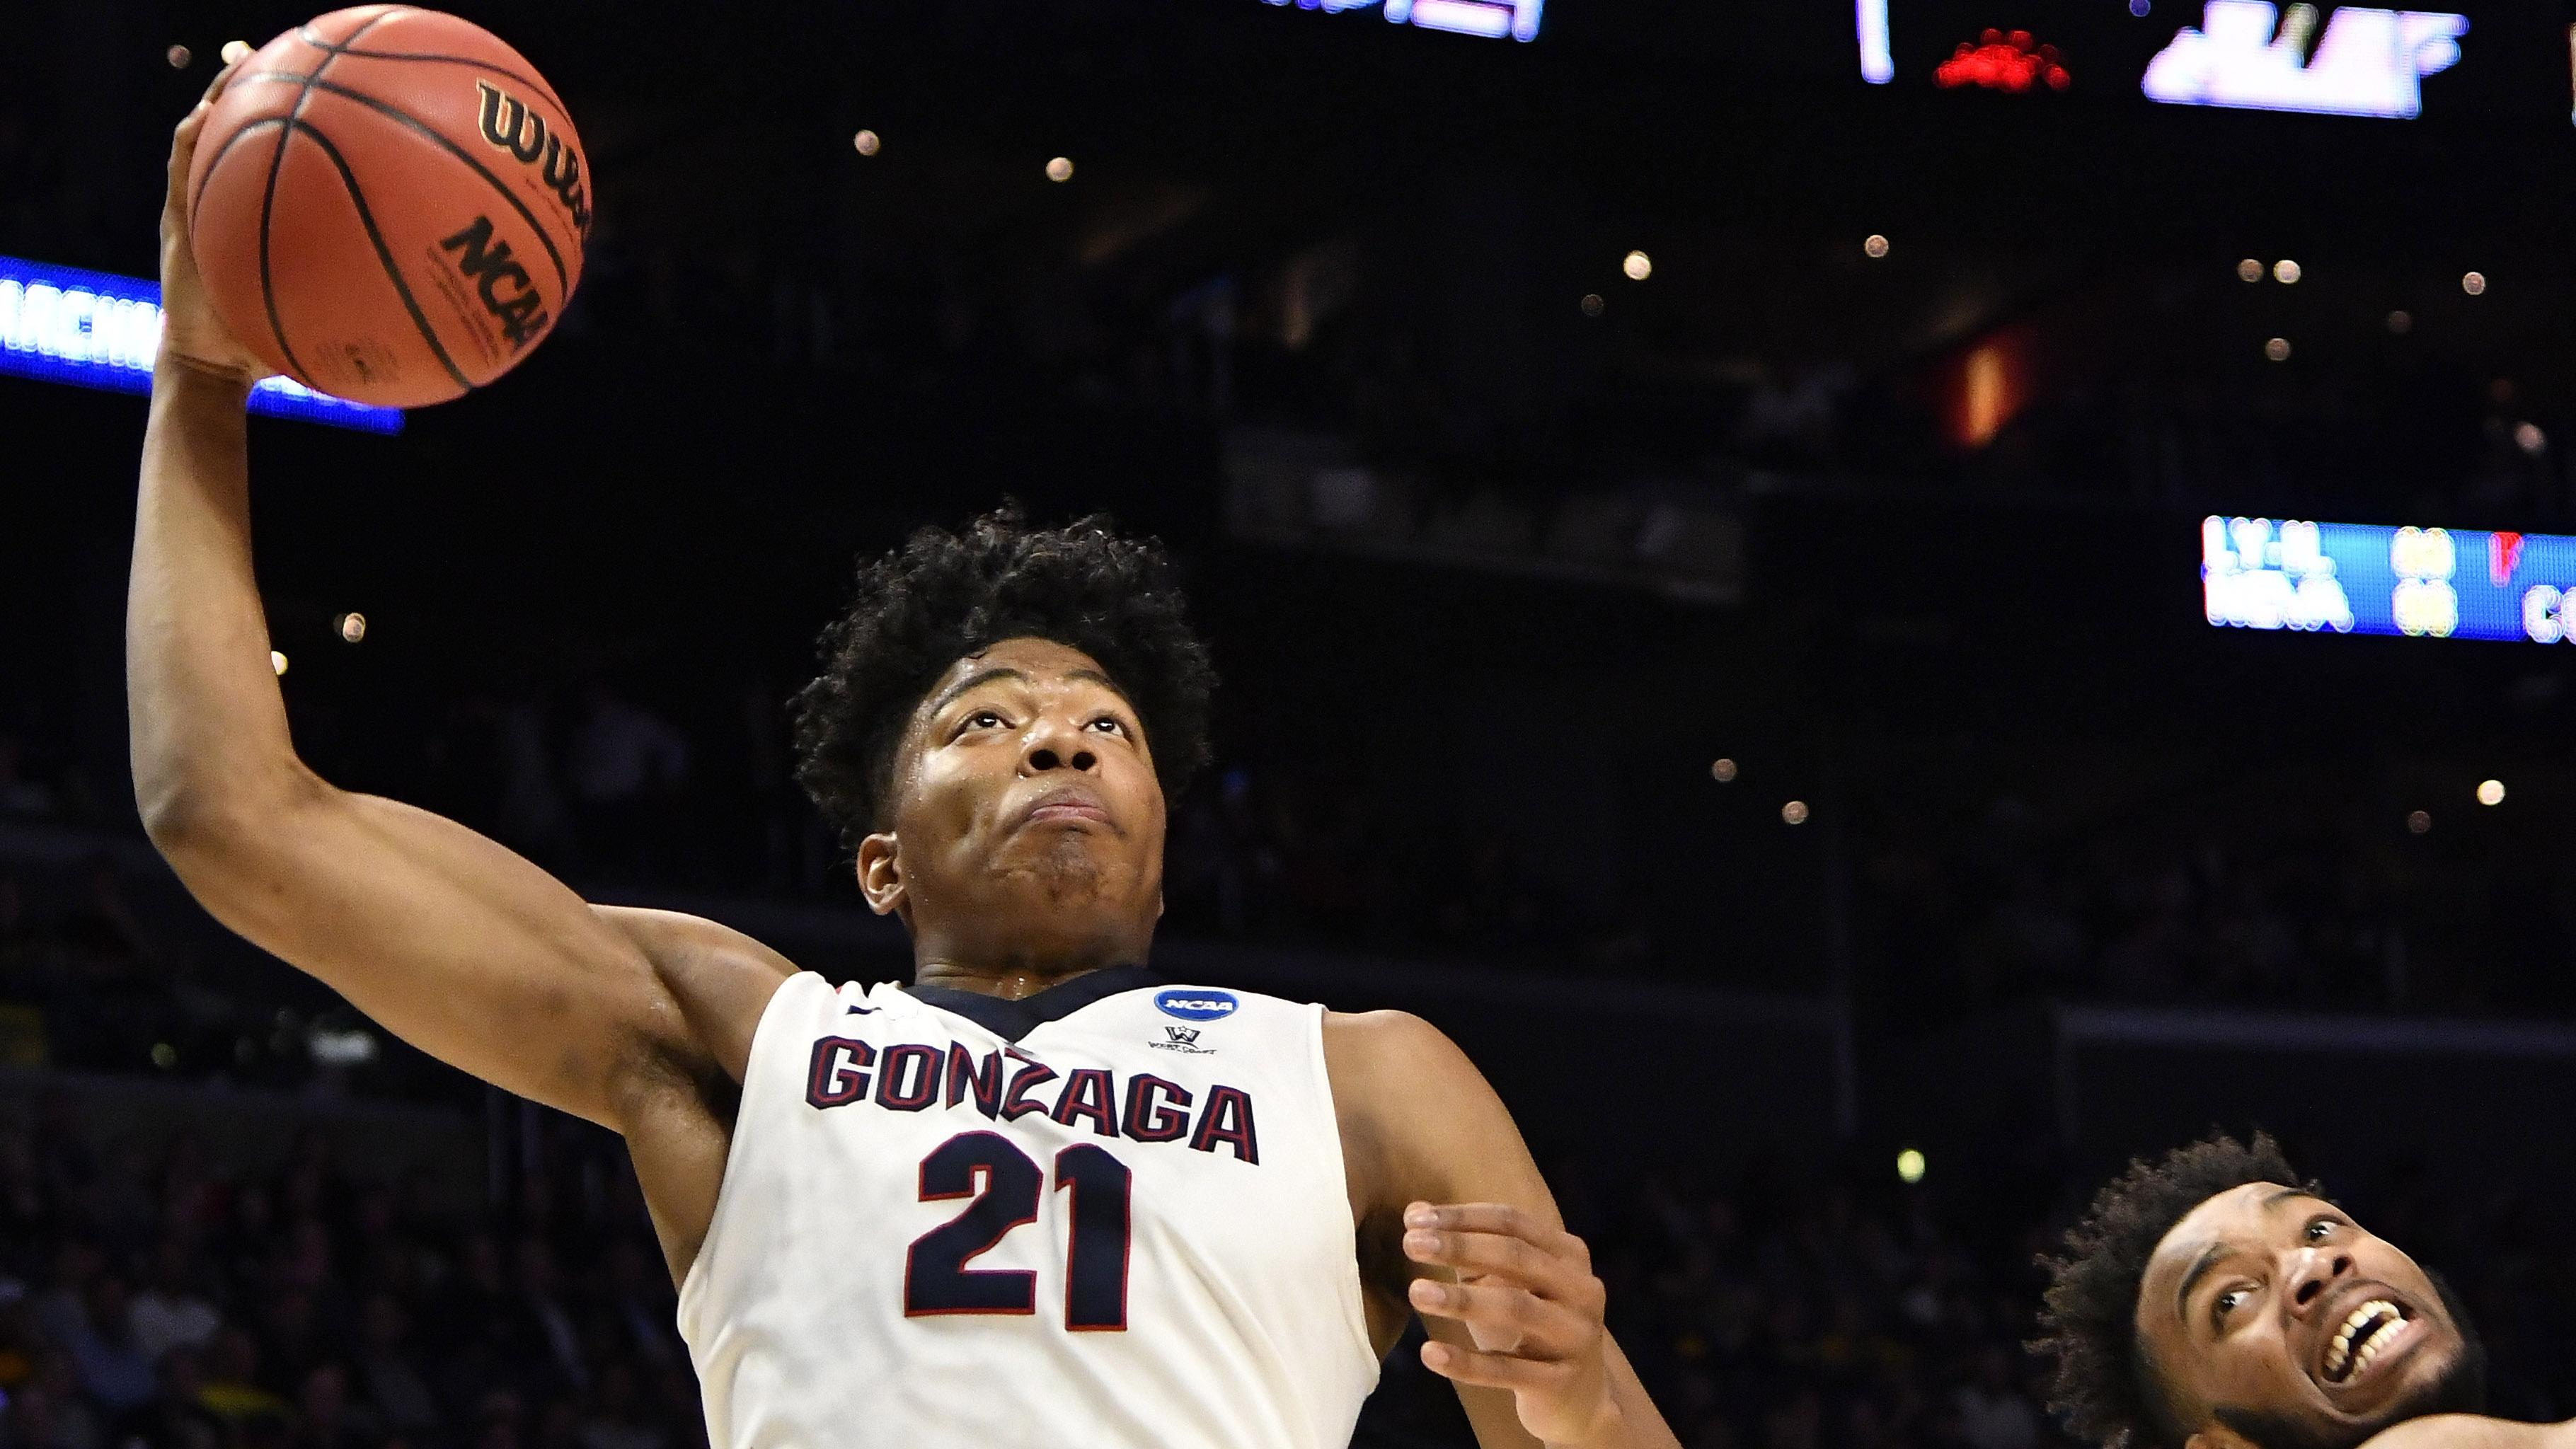 Gonzaga's Rui Hachimura goes to dunk